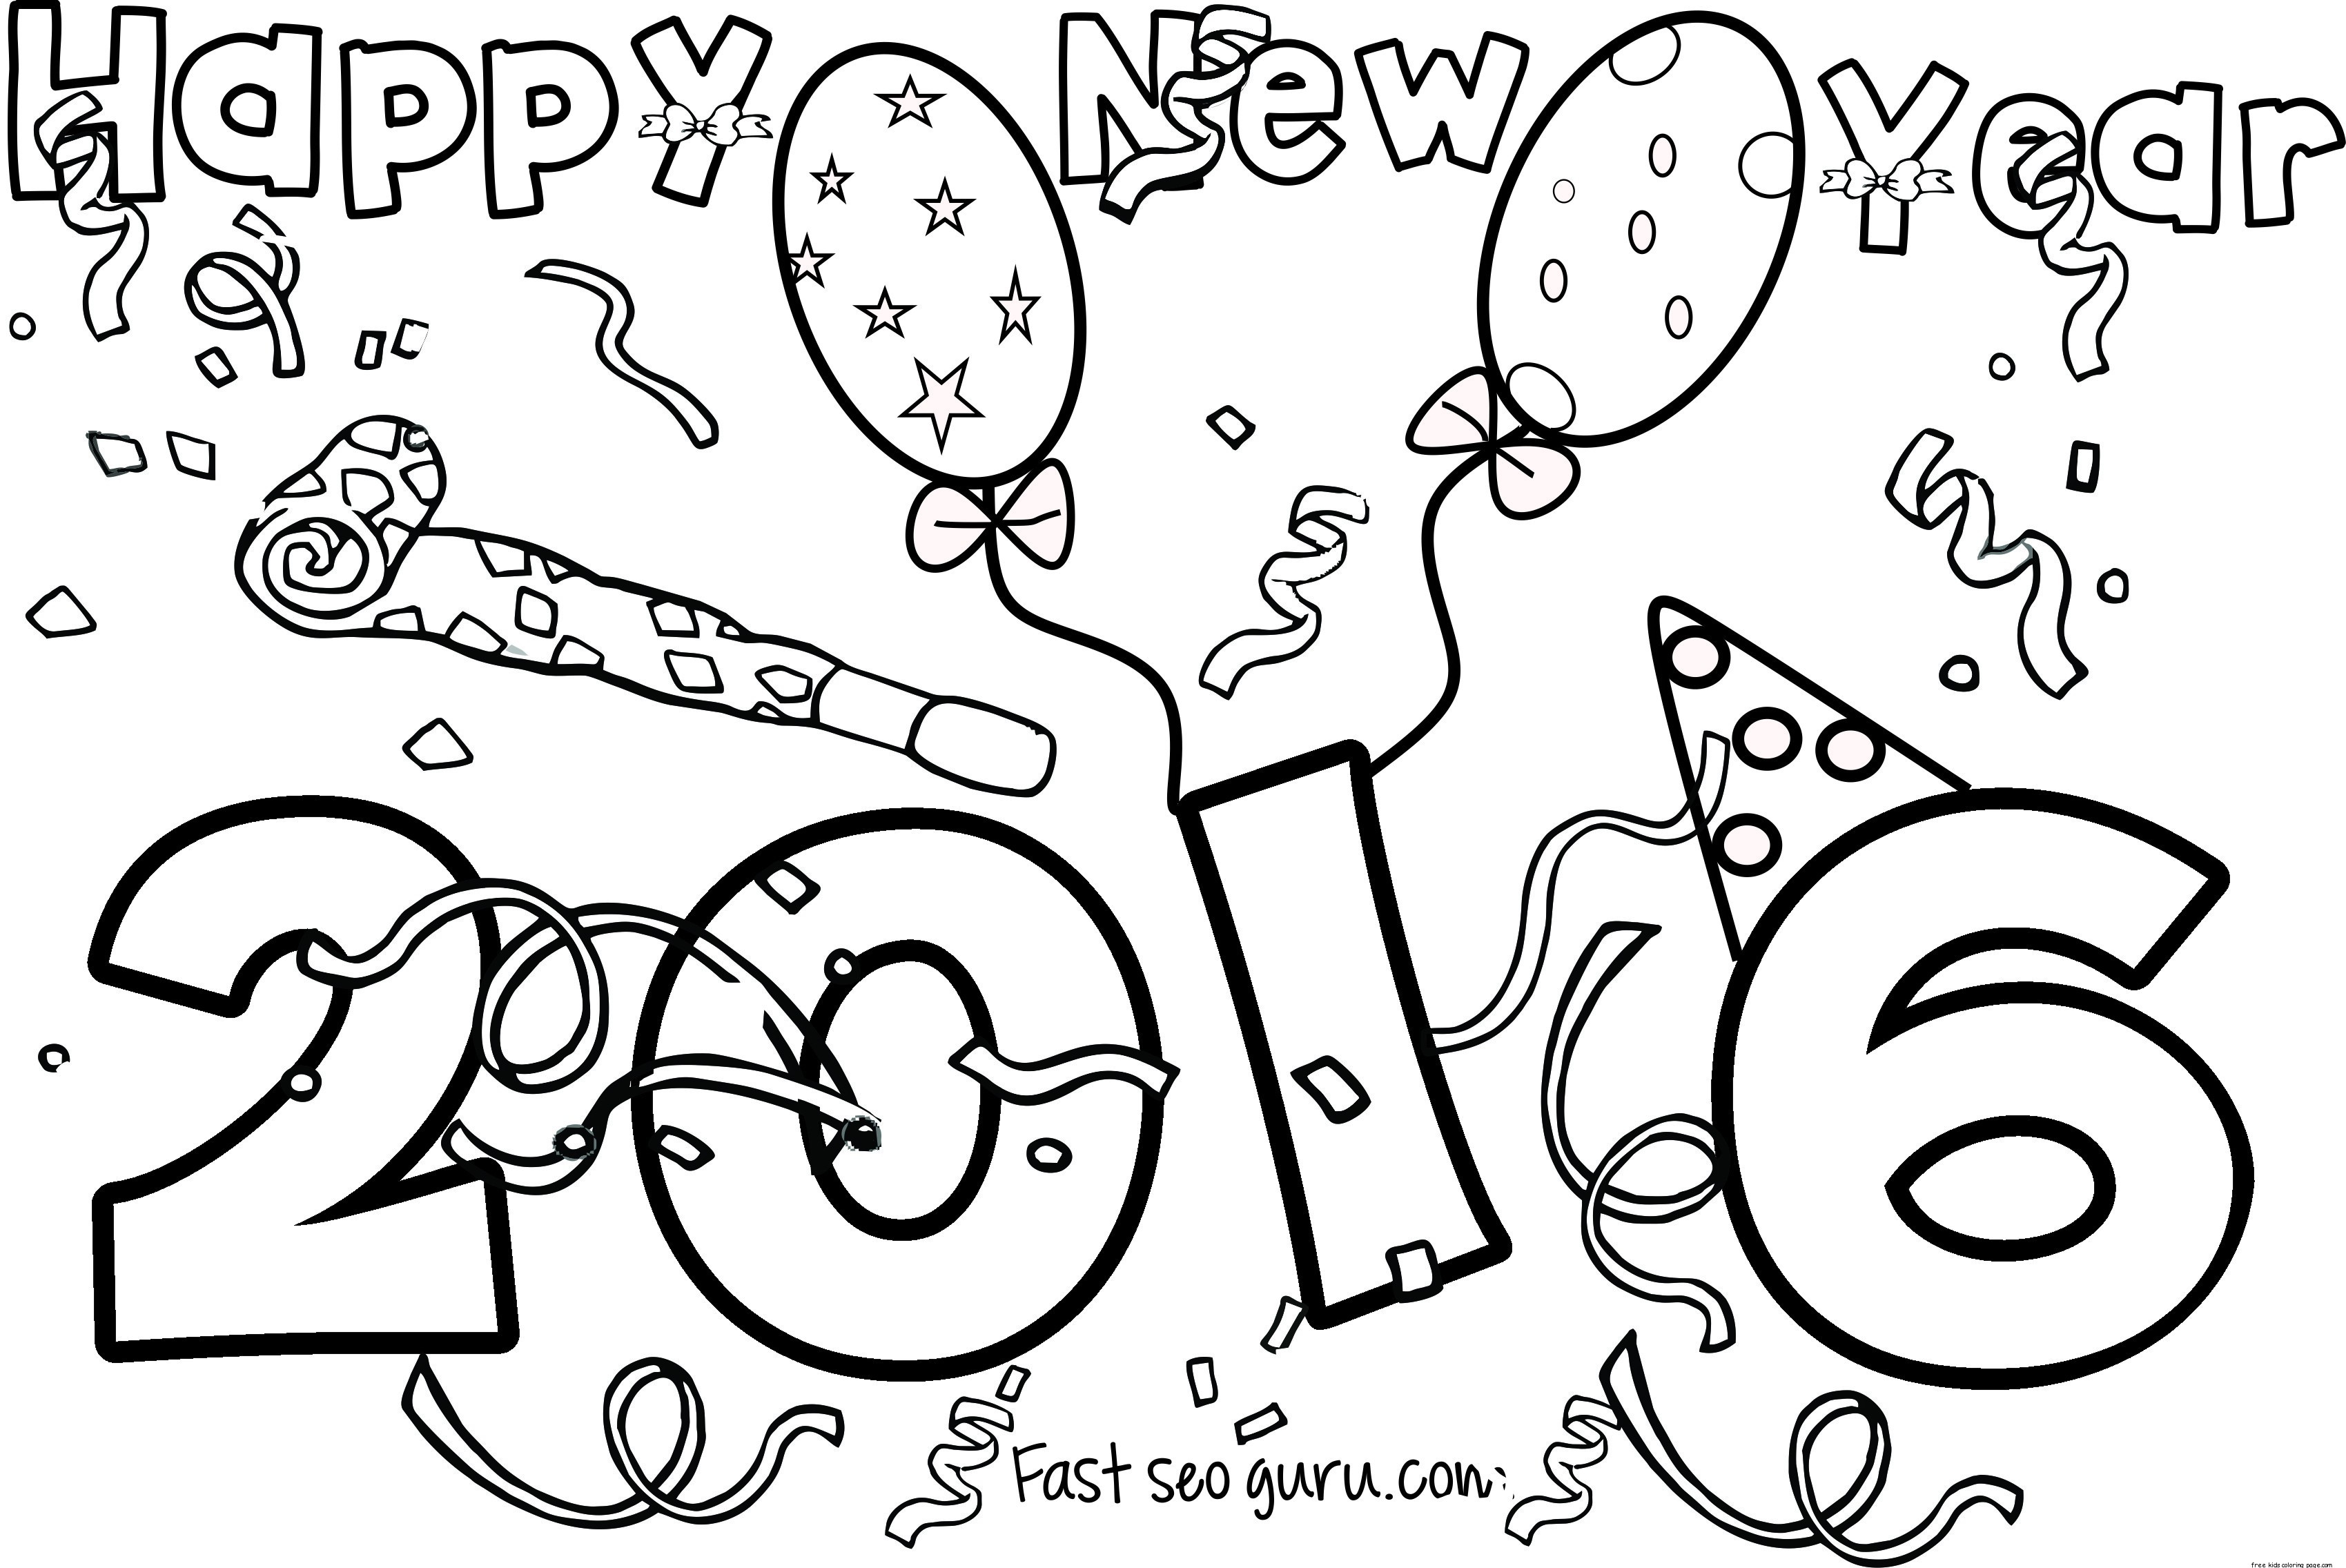 Easy Drawing For New Year Chinese Lantern Clipart Pixshark Images